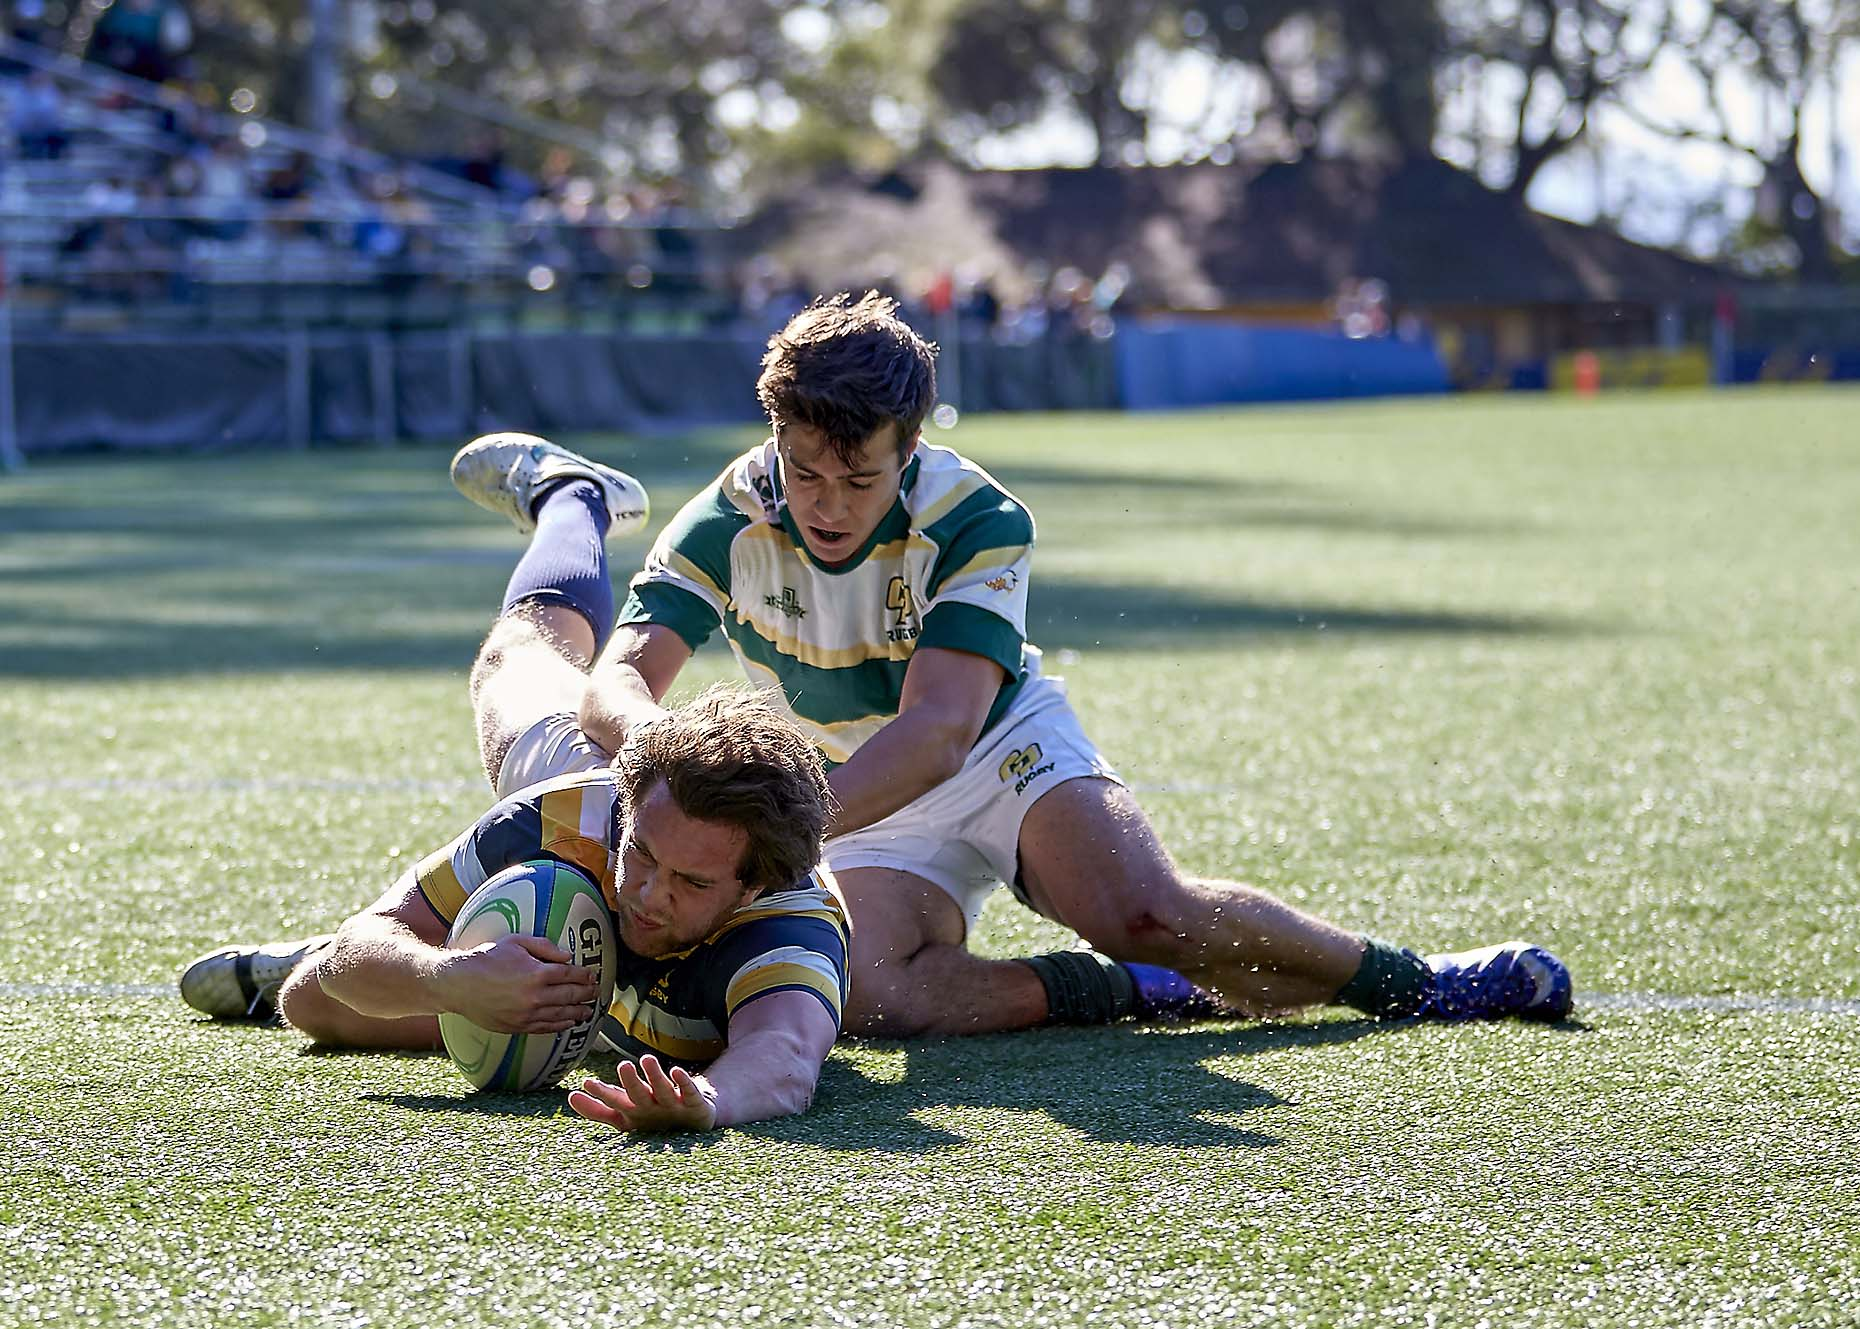 rsellers_170211_CalRugby_CPSLO_0235